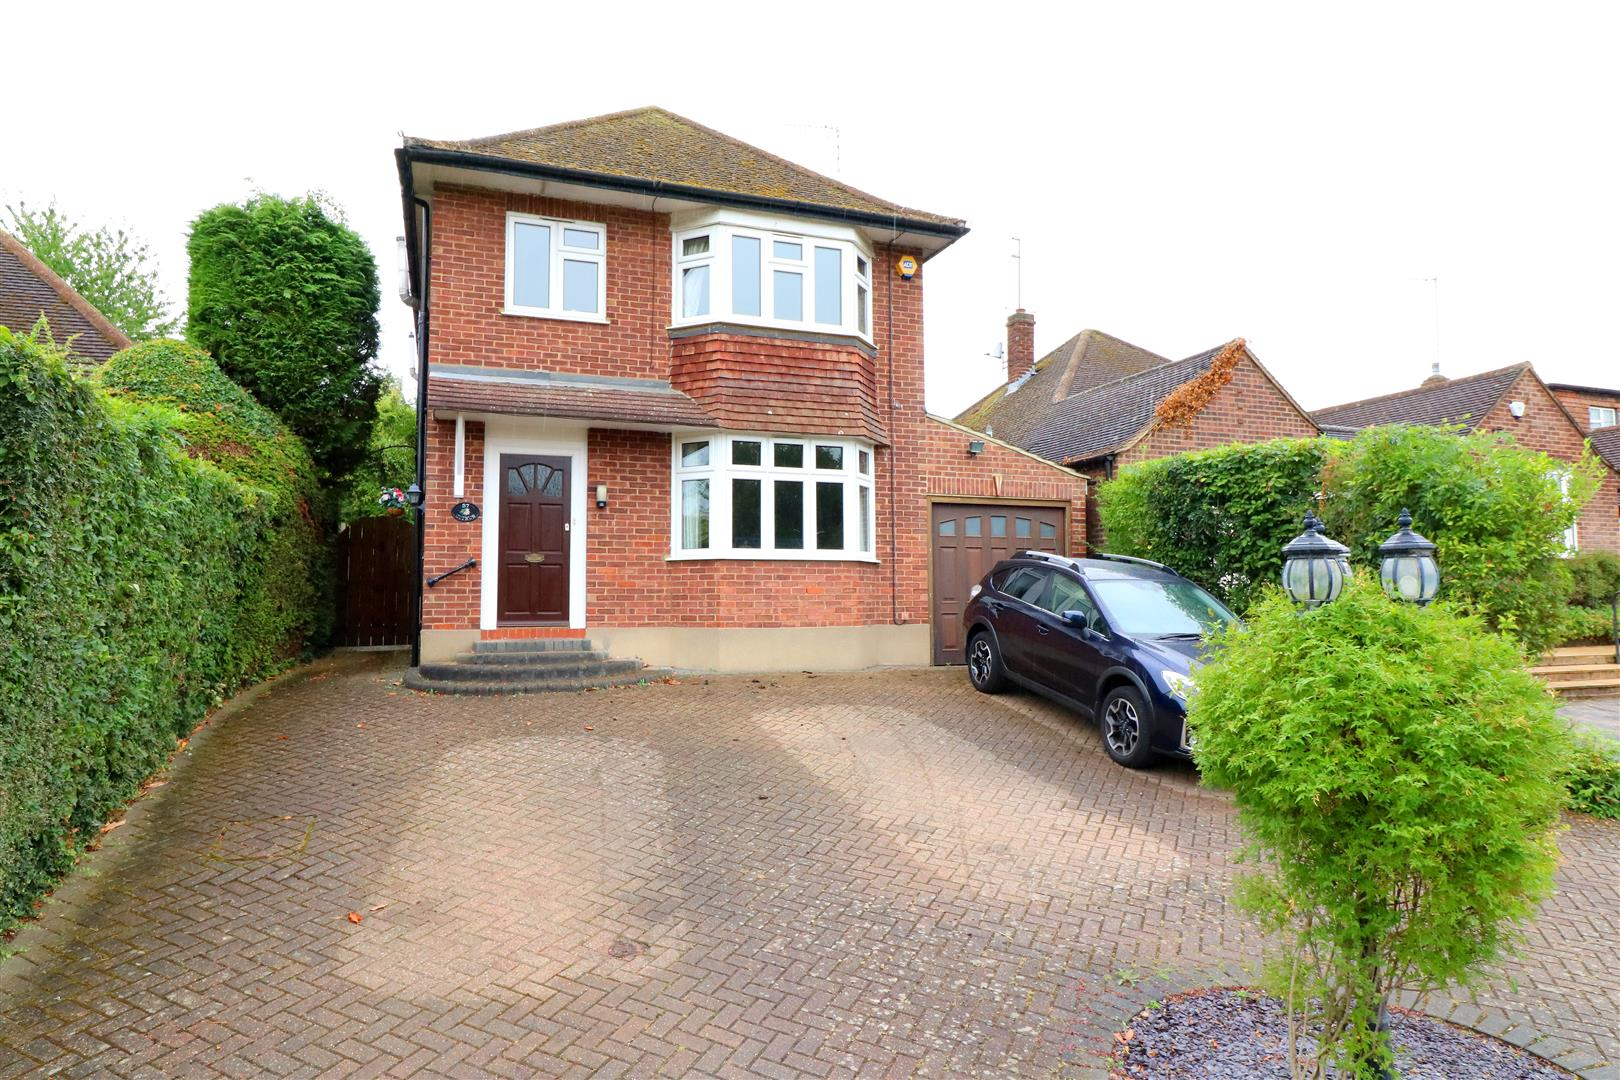 4 bed House for sale in Links Drive, Radlett - Property Image 1